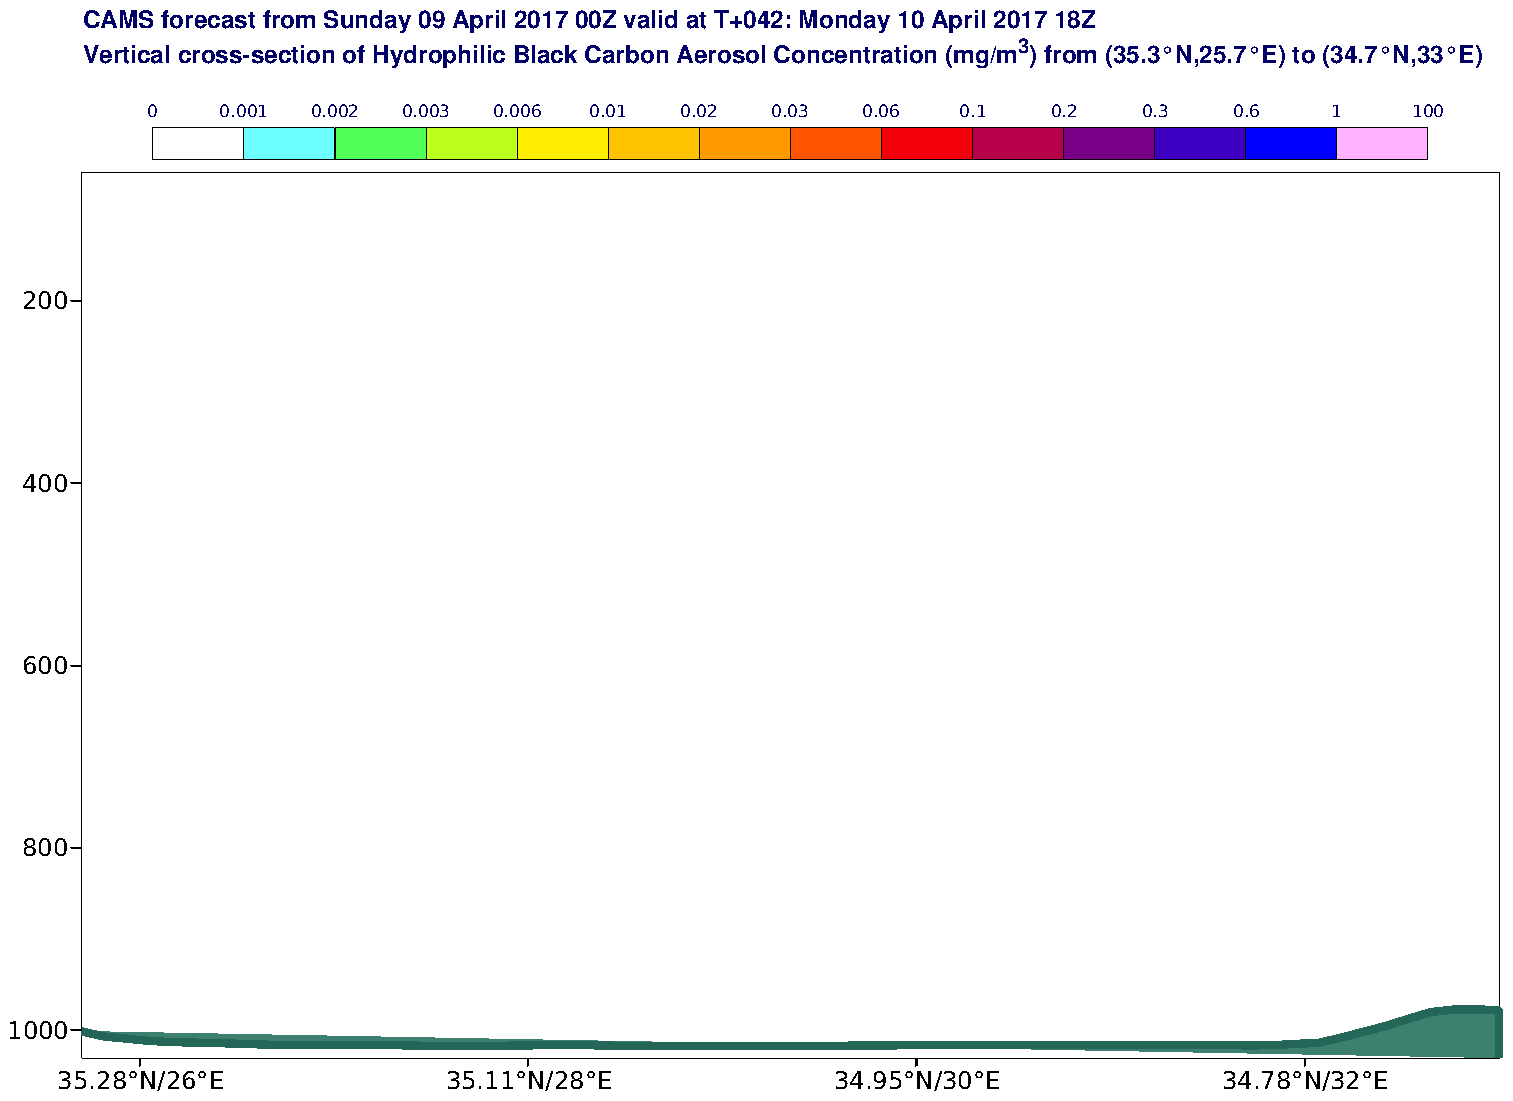 Vertical cross-section of Hydrophilic Black Carbon Aerosol Concentration (mg/m3) valid at T42 - 2017-04-10 18:00